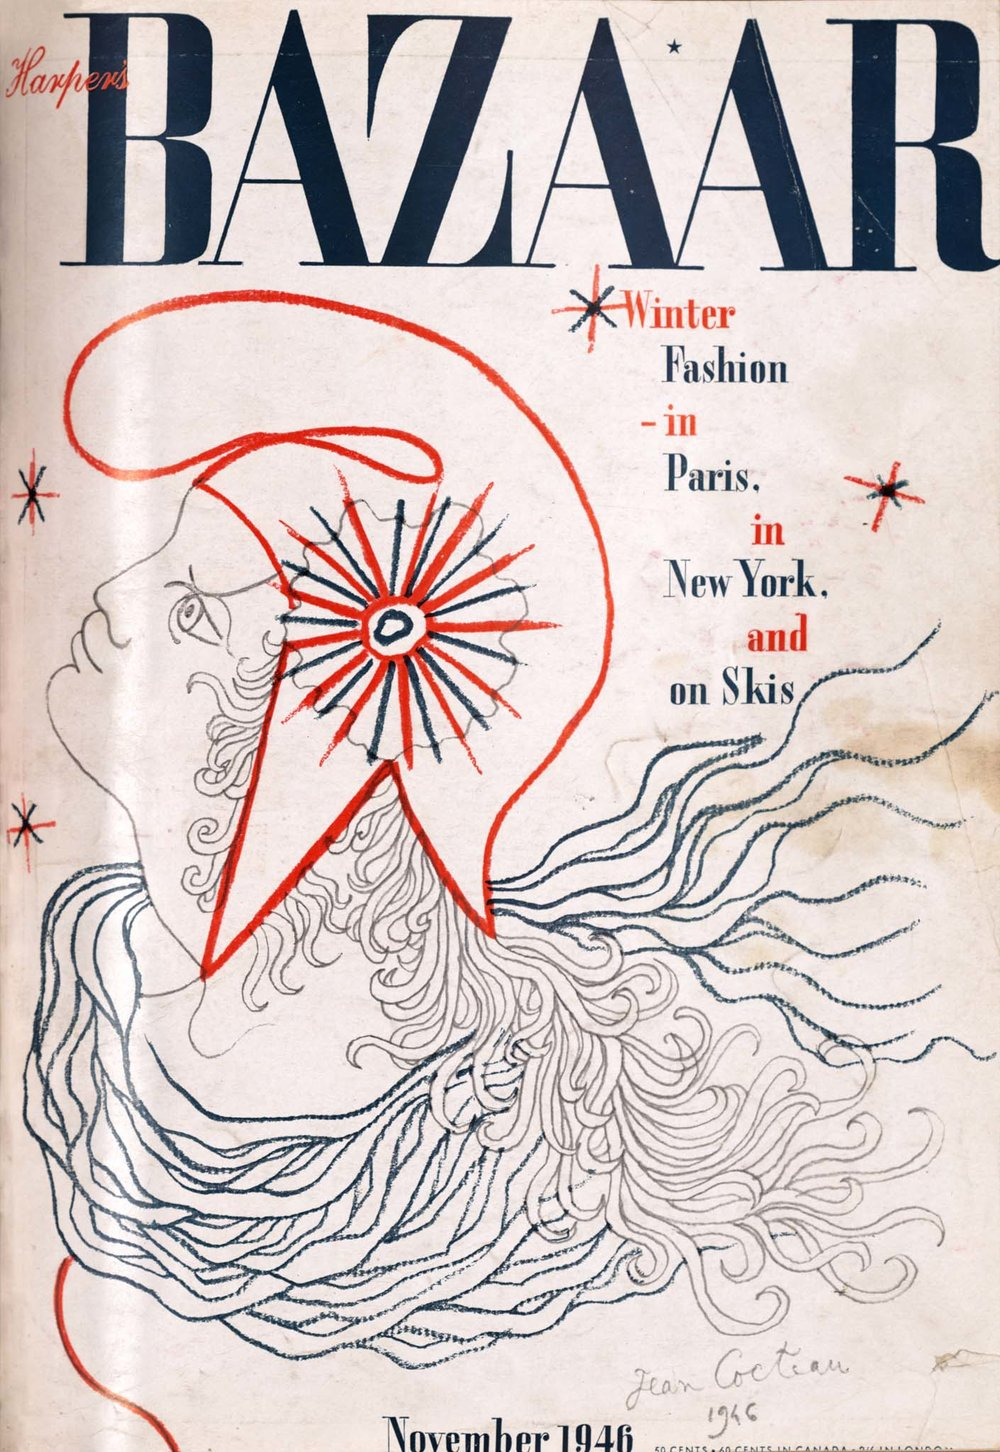 Harper's Bazaar,  November 1946 Cover by Jean Cocteau